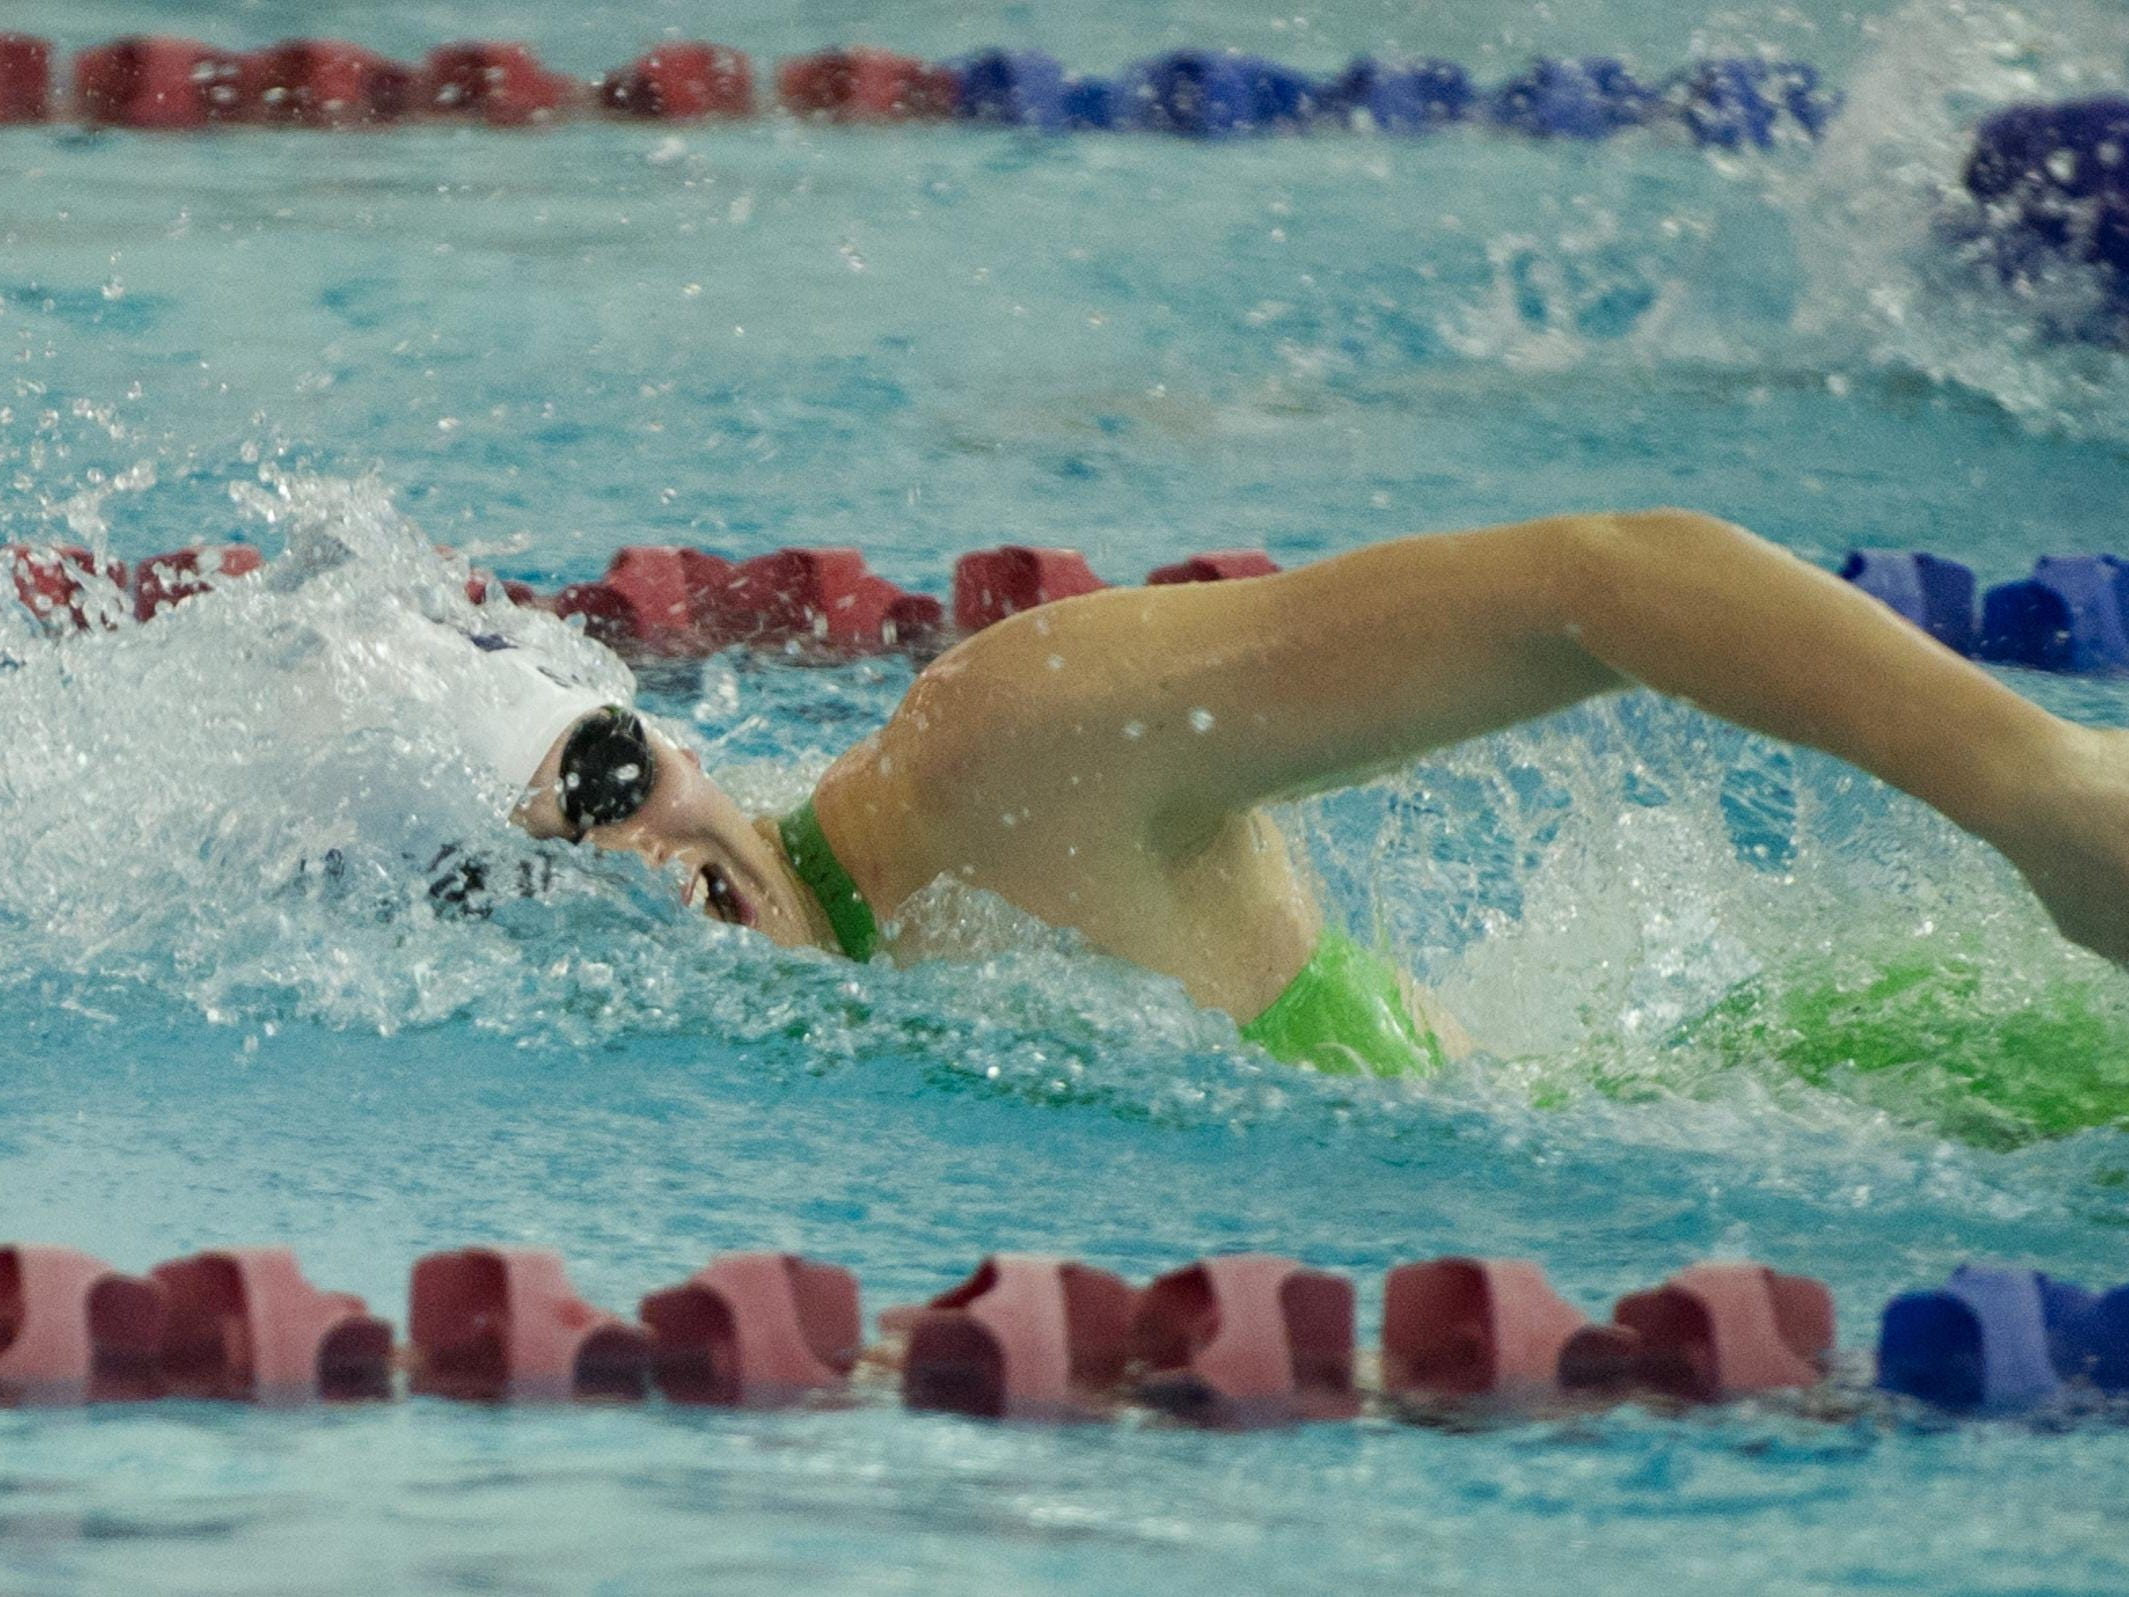 Pittsford swimmer Lindsay Stone in the 200 yard freestyle event